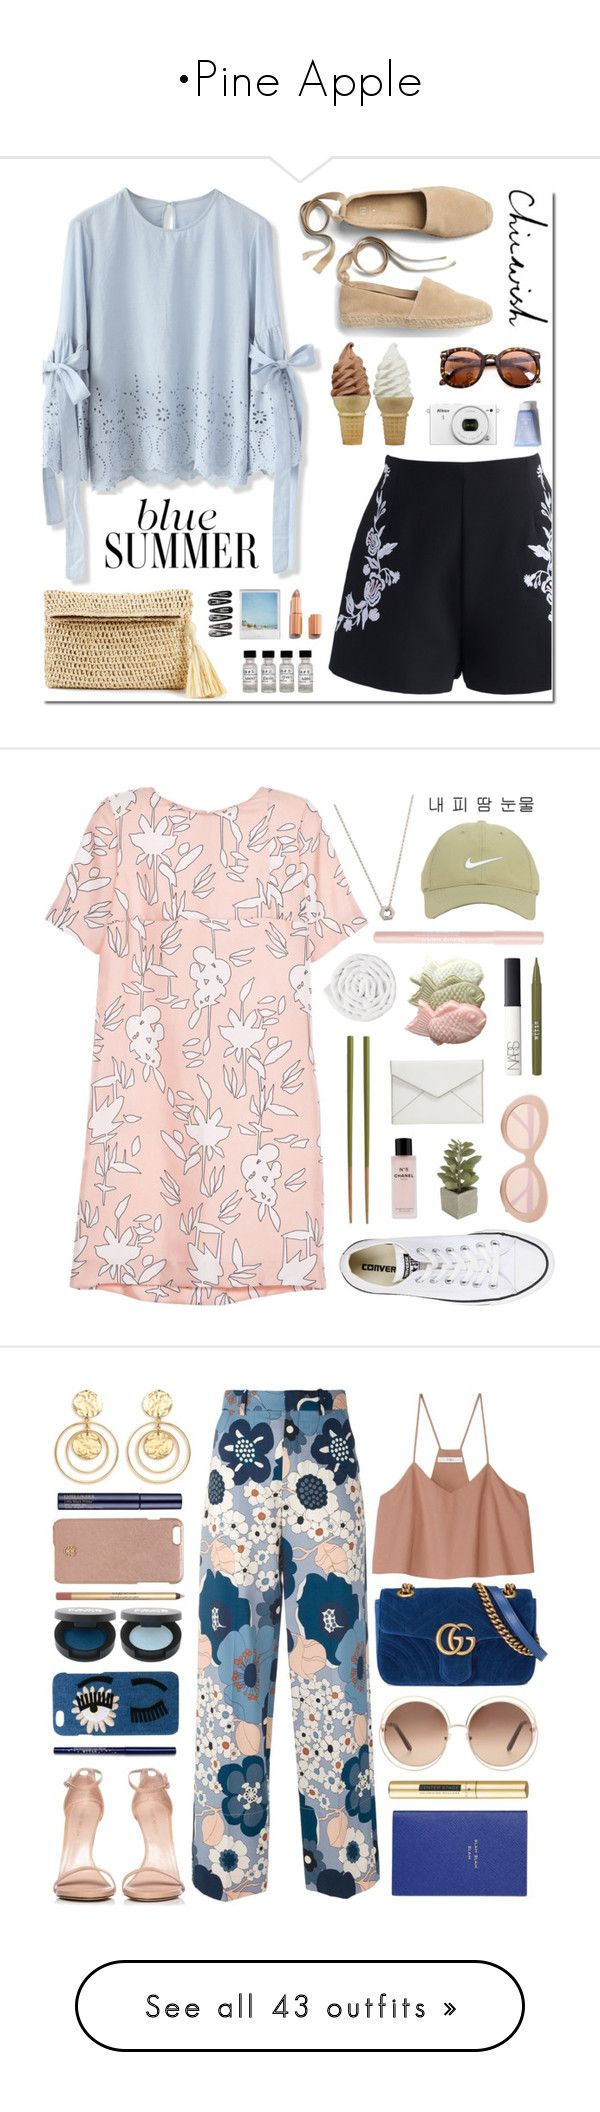 """•Pine Apple"" by makeshinethestars ❤ liked on Polyvore featuring Chicwish, Gap, Nikon, Ann Taylor, Charlotte Tilbury, Clips, MIANSAI, Marni, Nike Golf and Sunday Somewhere"